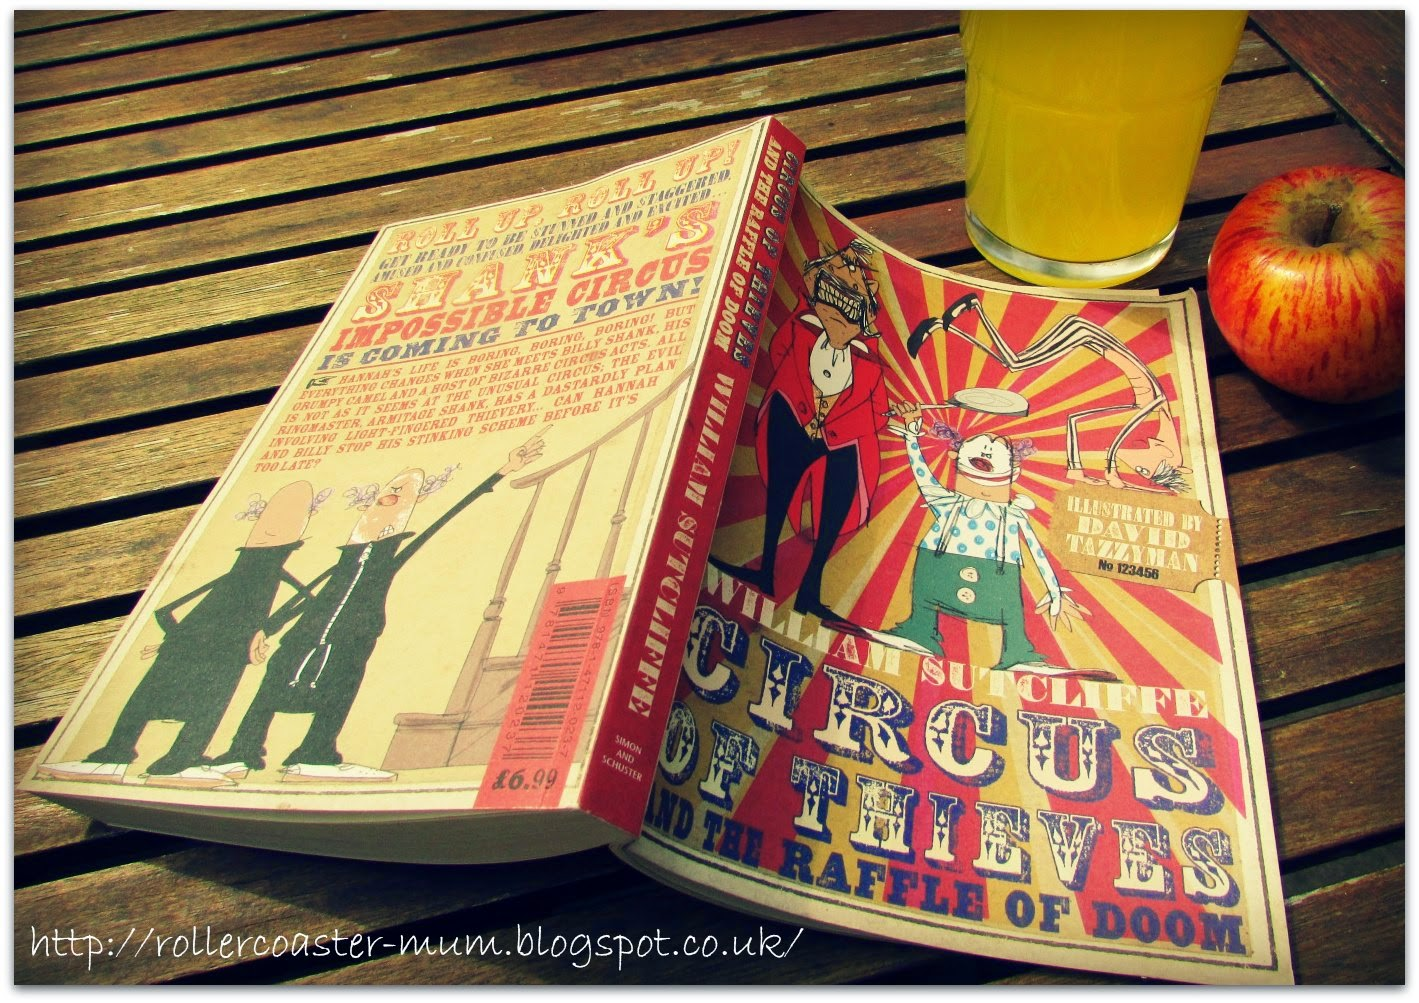 Book review of Circus of Thieves and the Raffle of Doom by William Sutcliffe